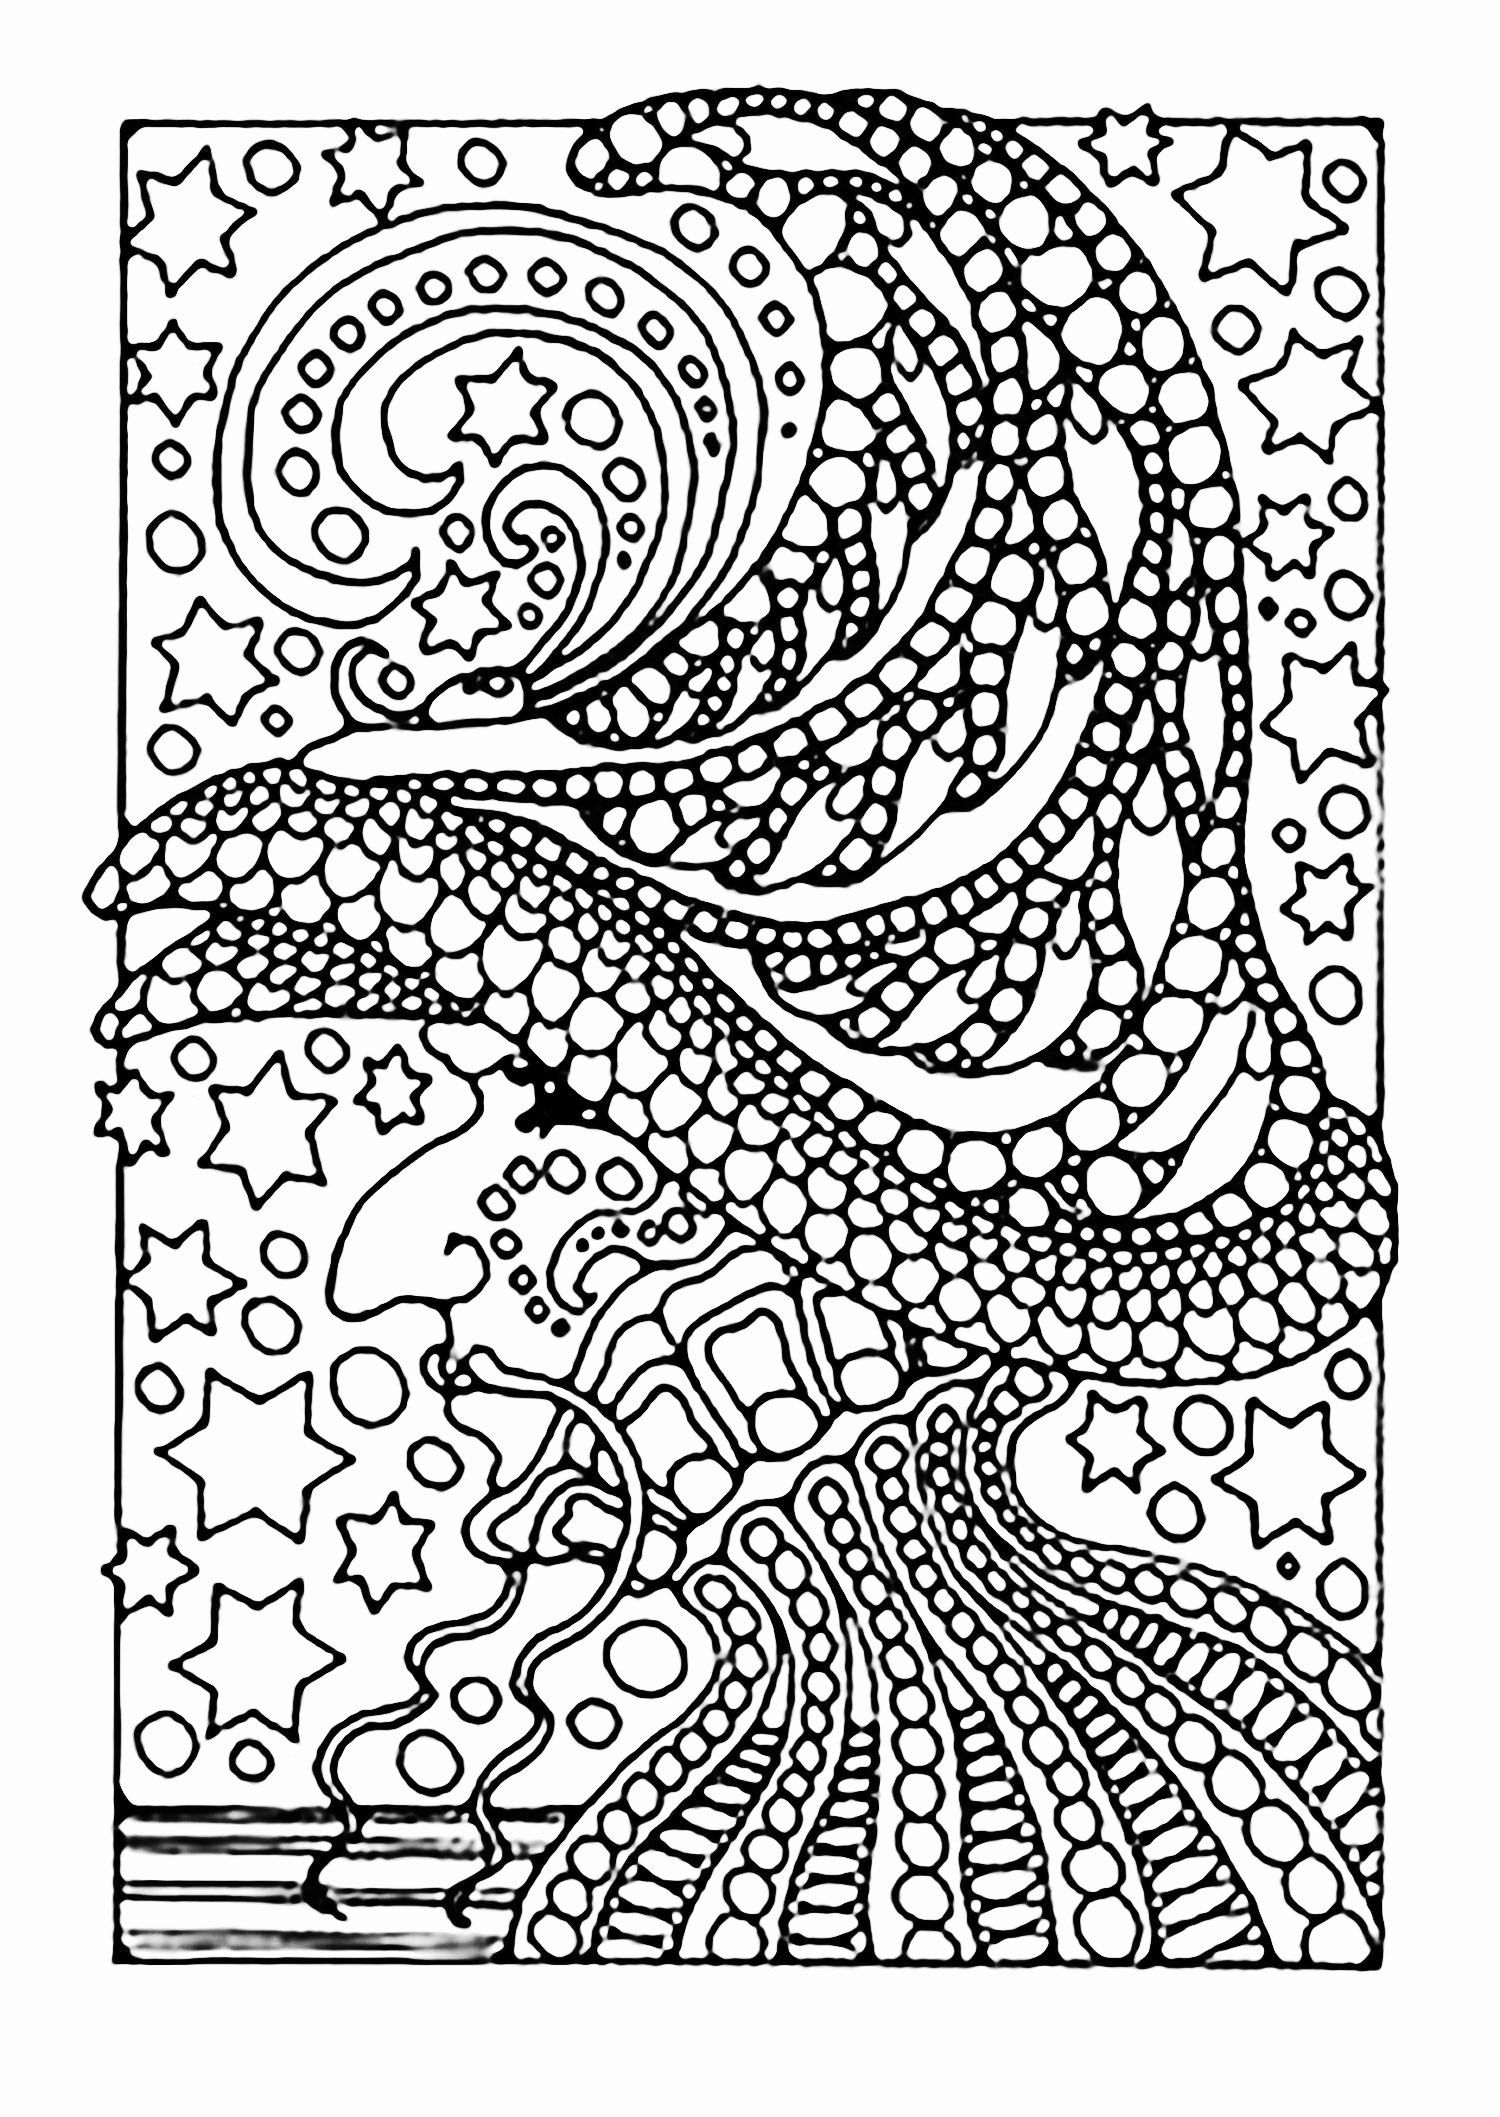 United States Coloring Page New Cool Coloring Page Unique Witch Coloring Pages New Cra Witch Coloring Pages Coloring Pages Inspirational Mandala Coloring Pages